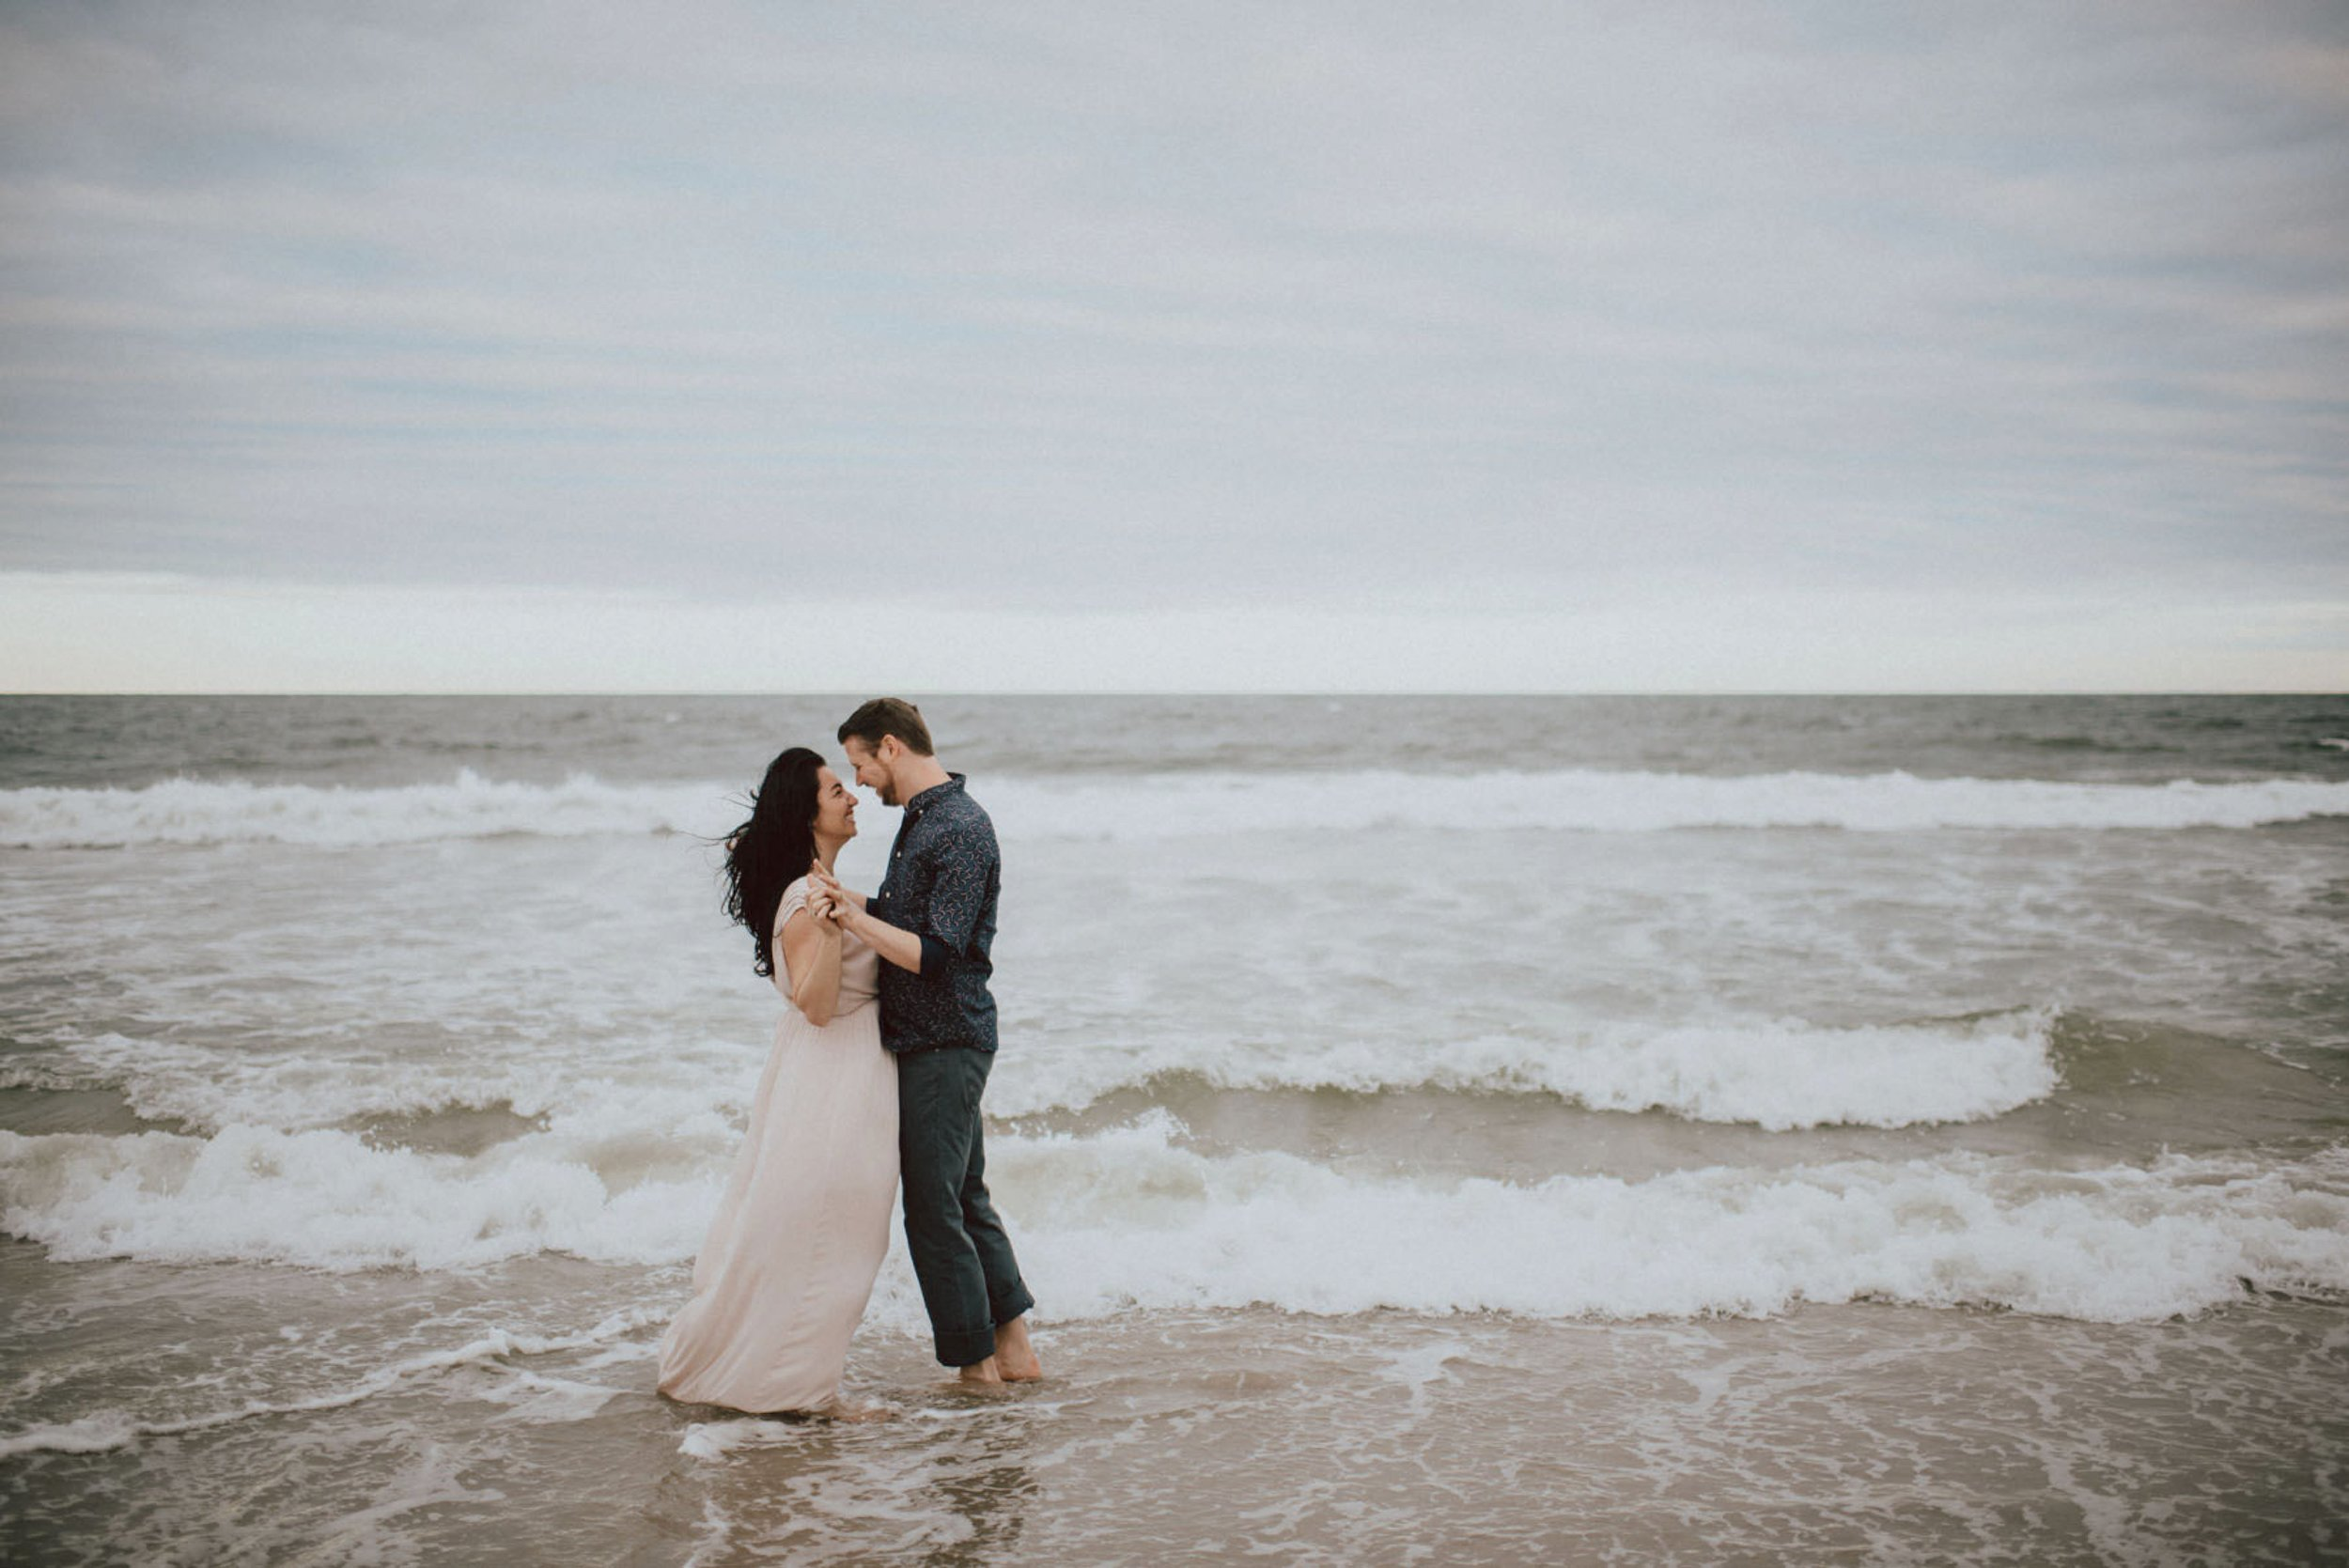 Long-beach-island-engagement-session-28.jpg